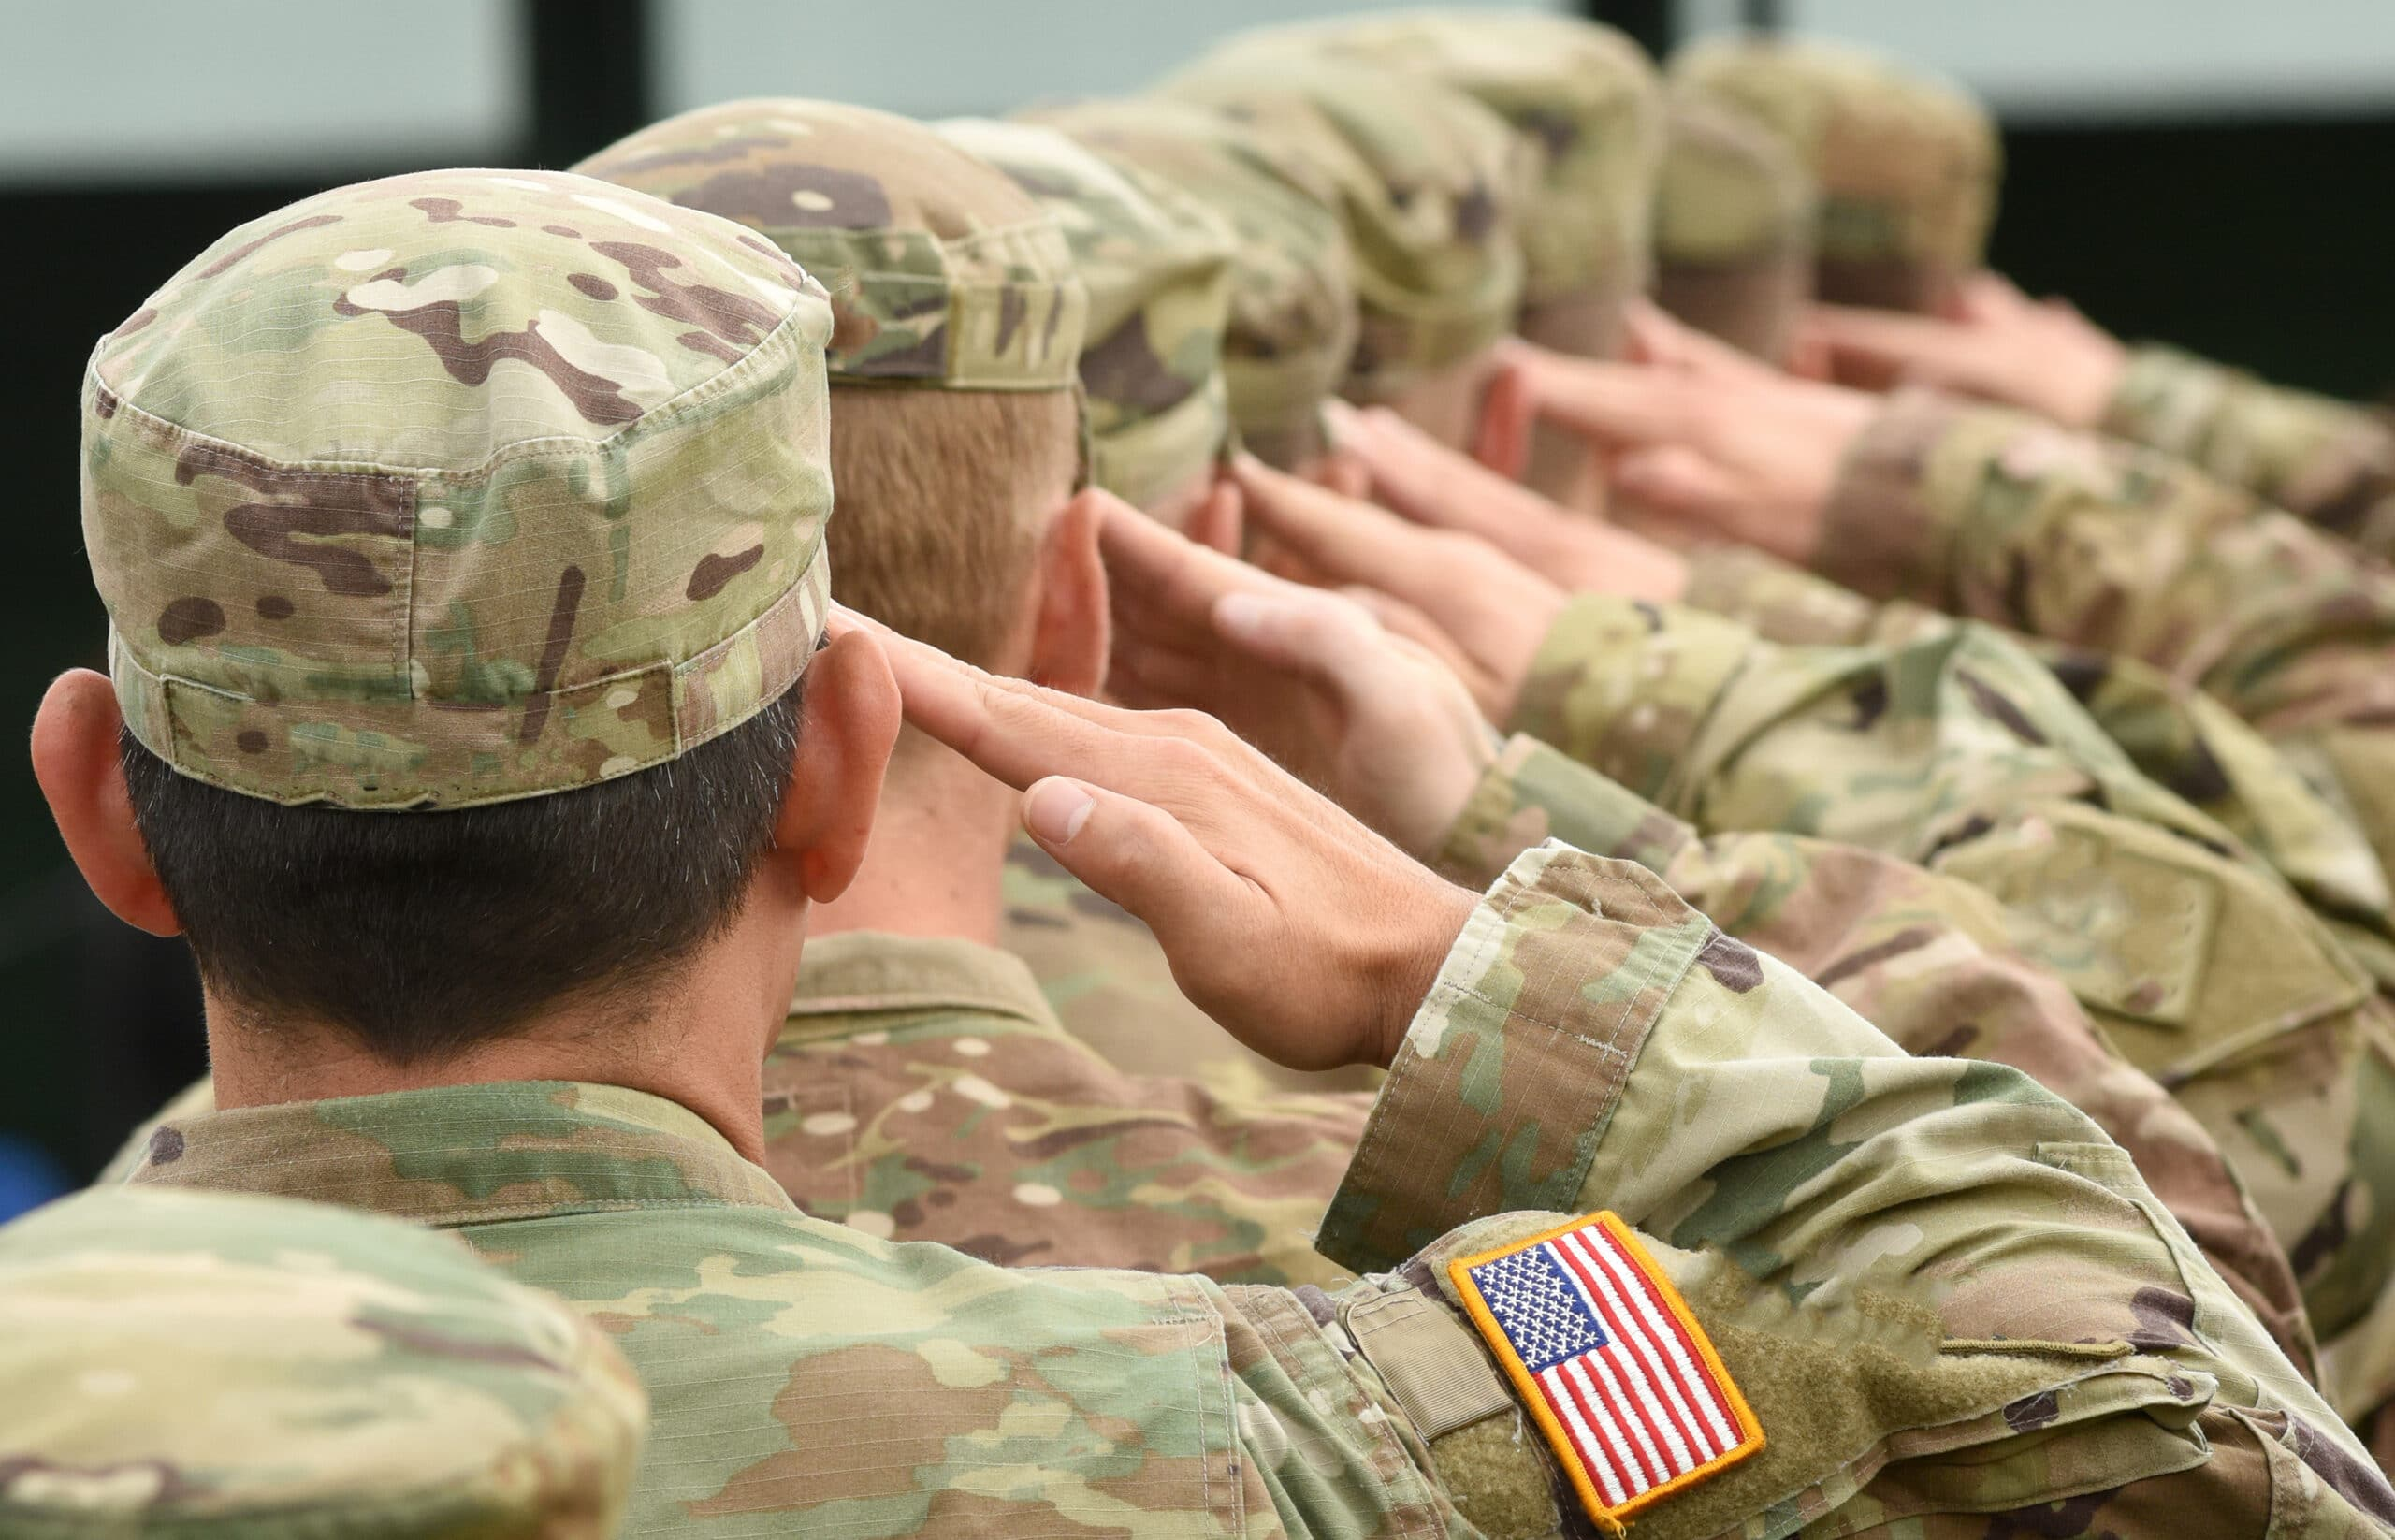 This is an image of army service members.